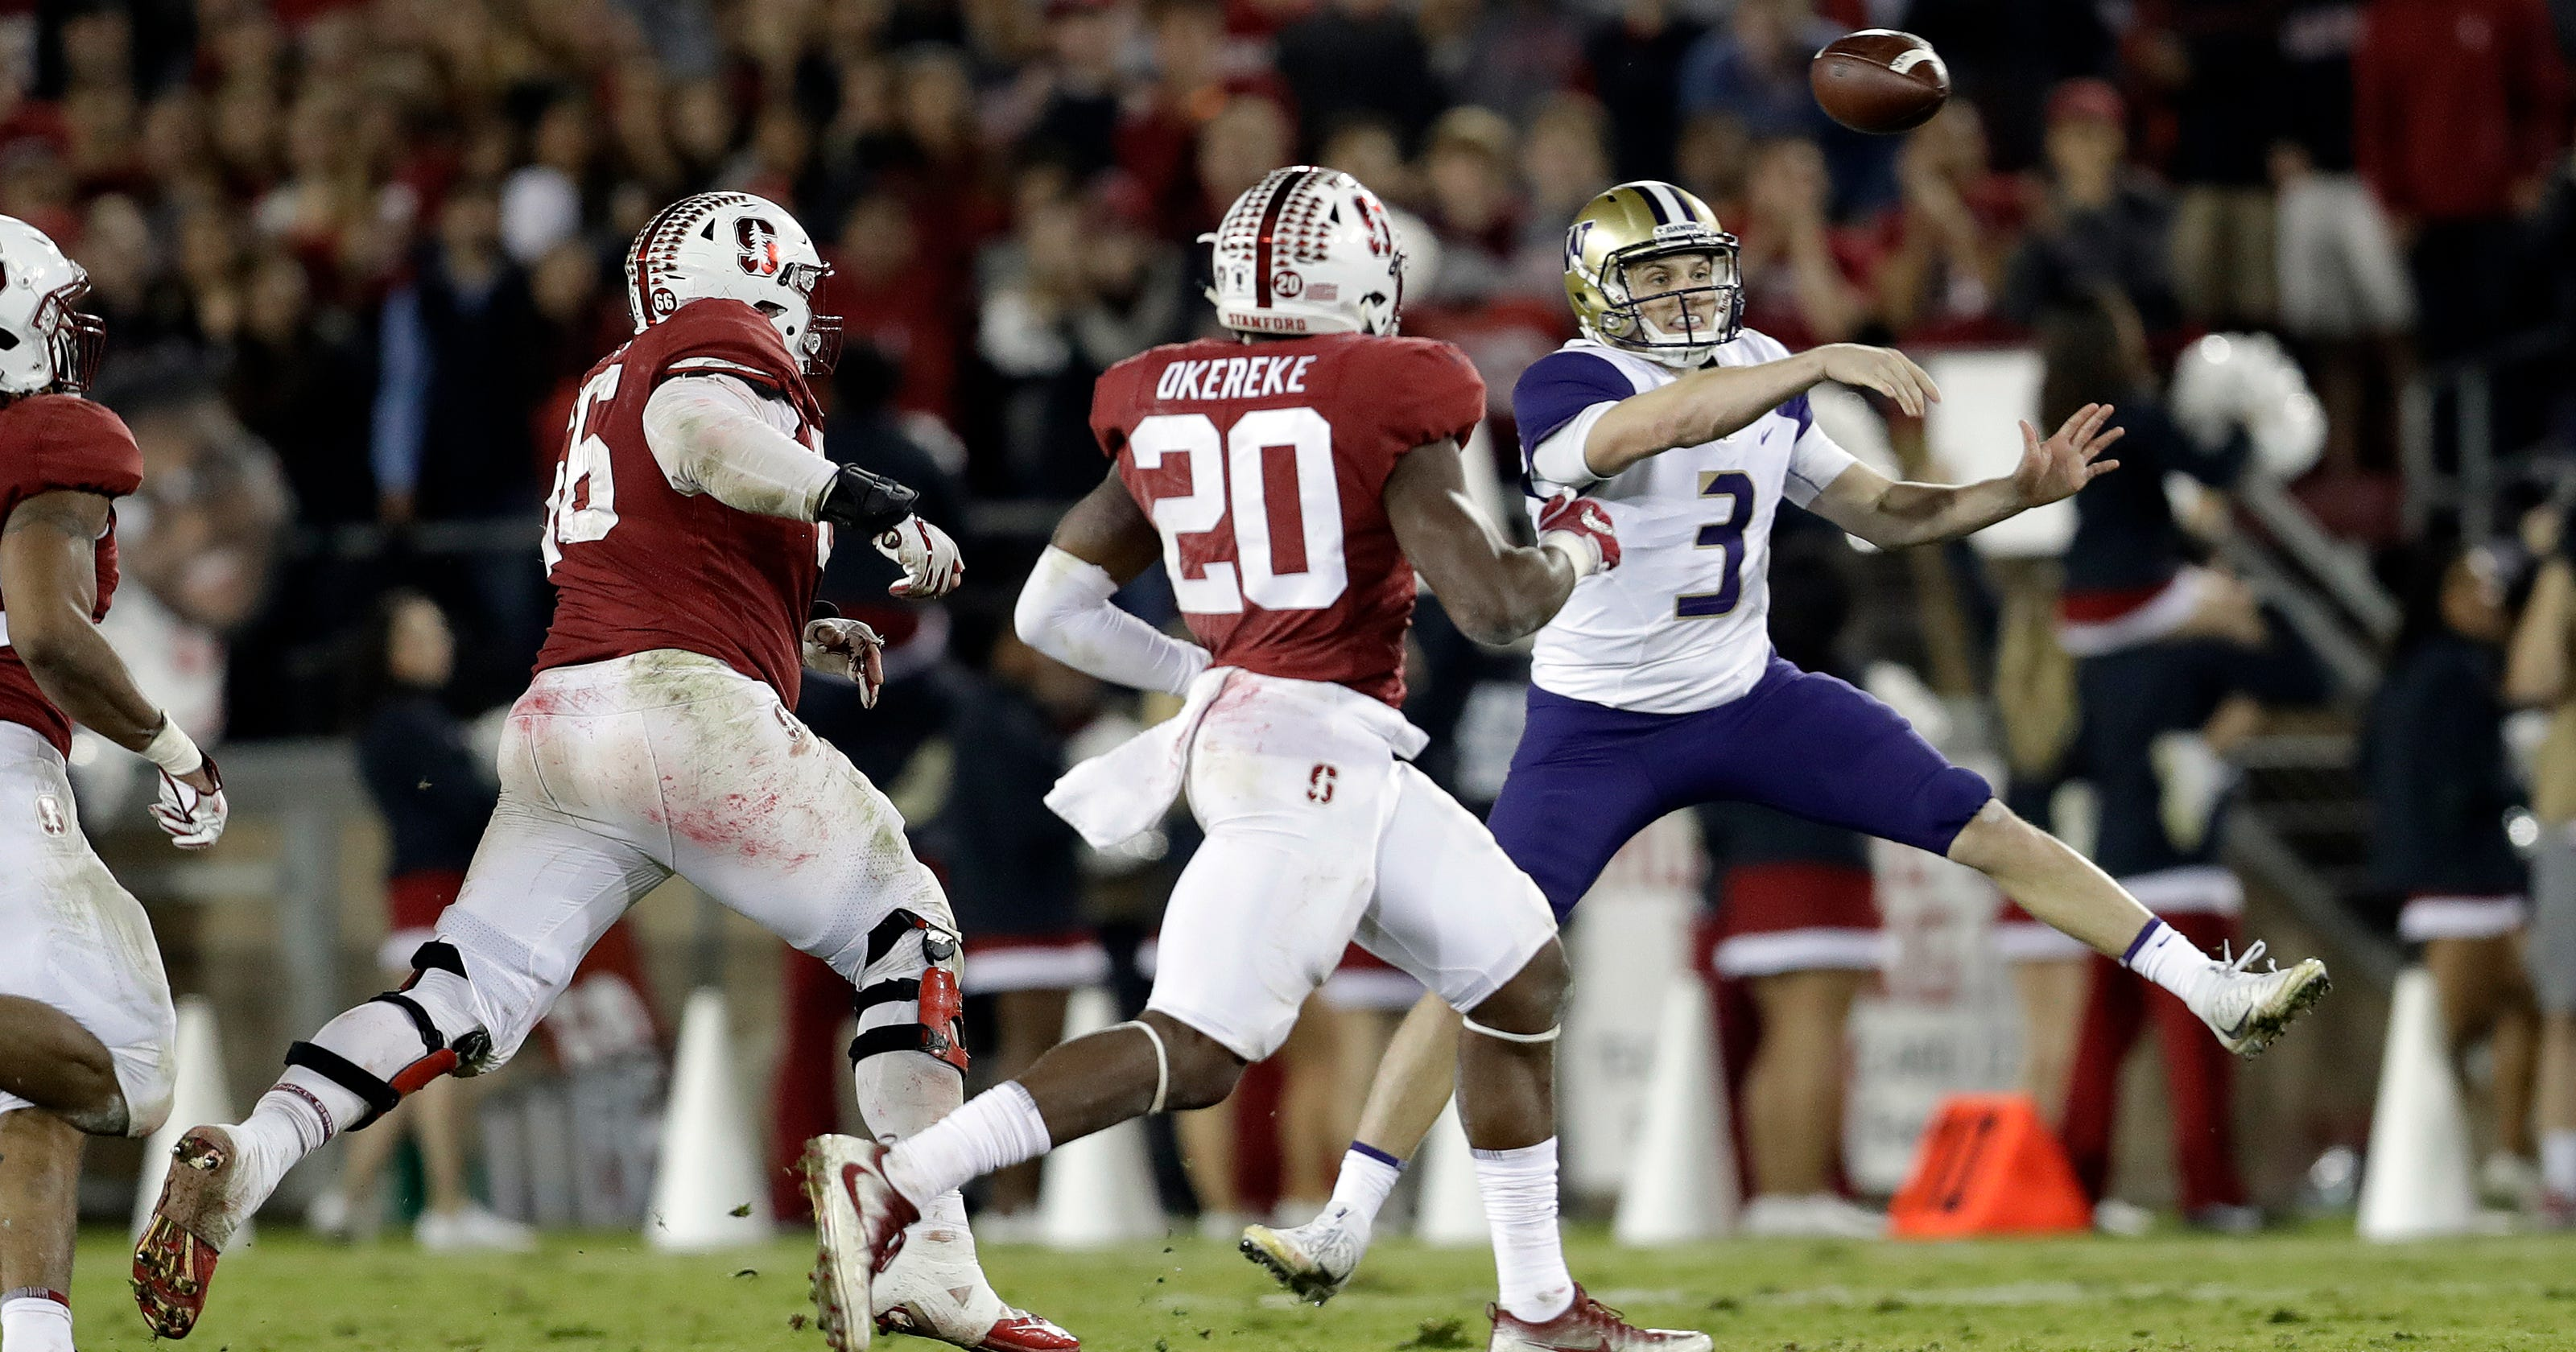 Washington Qb Browning Efficient But Not Matching Last